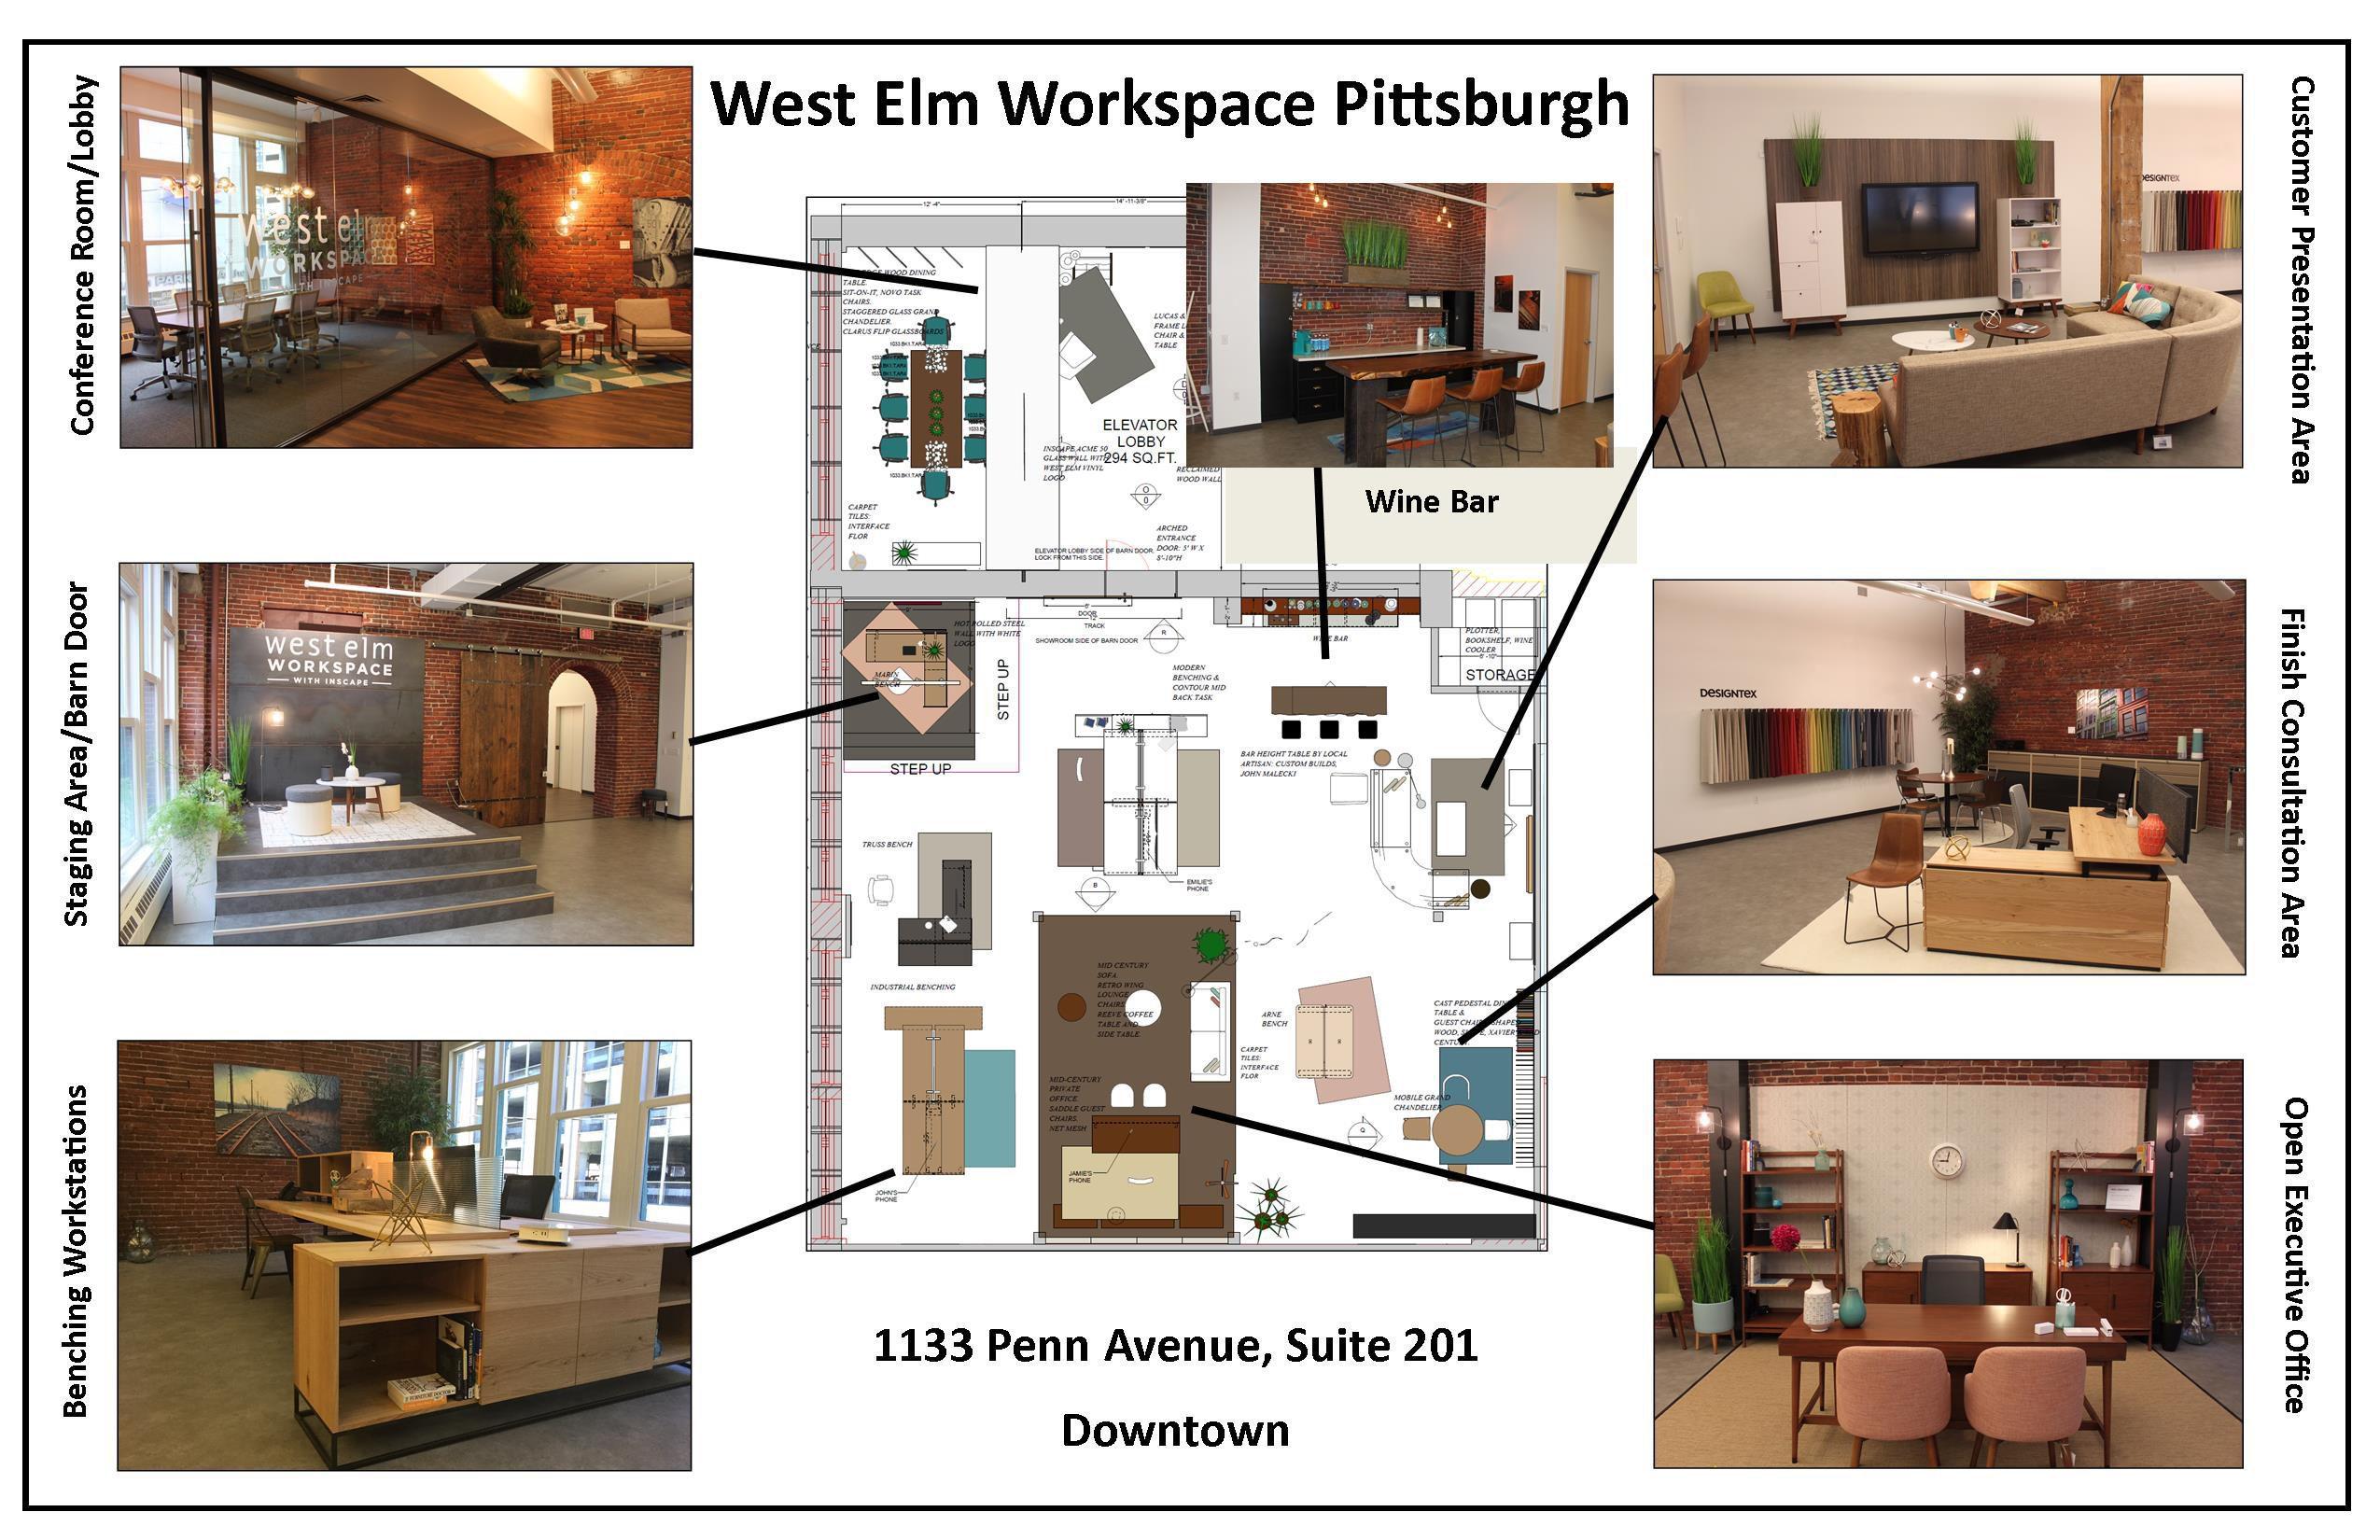 West Elm Workspace Pittsburgh Its Worth A Look